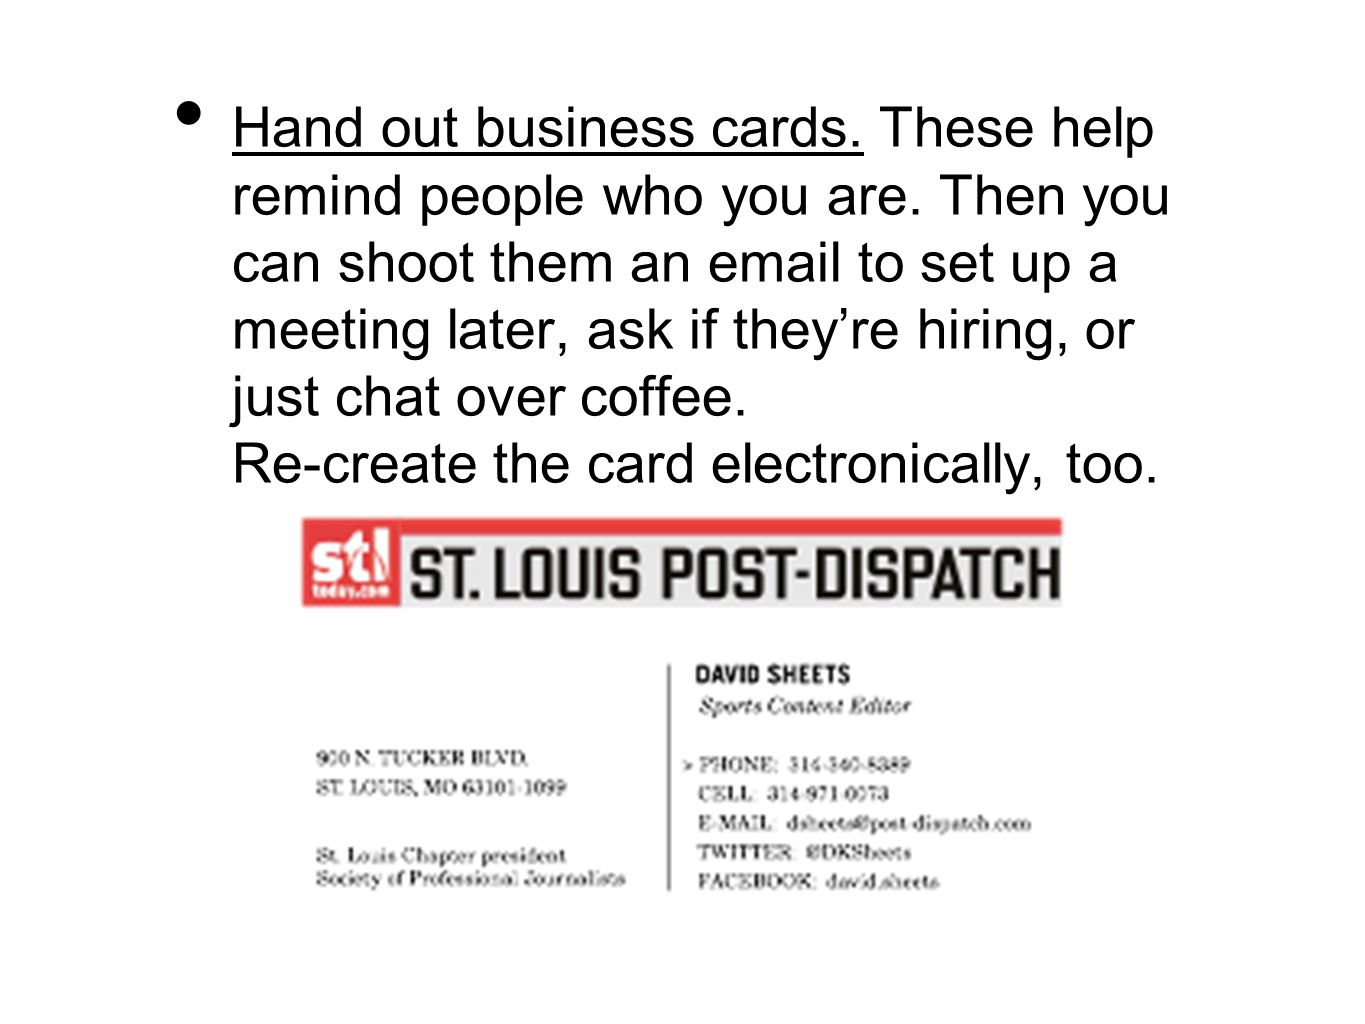 Hand out business cards. These help remind people who you are.